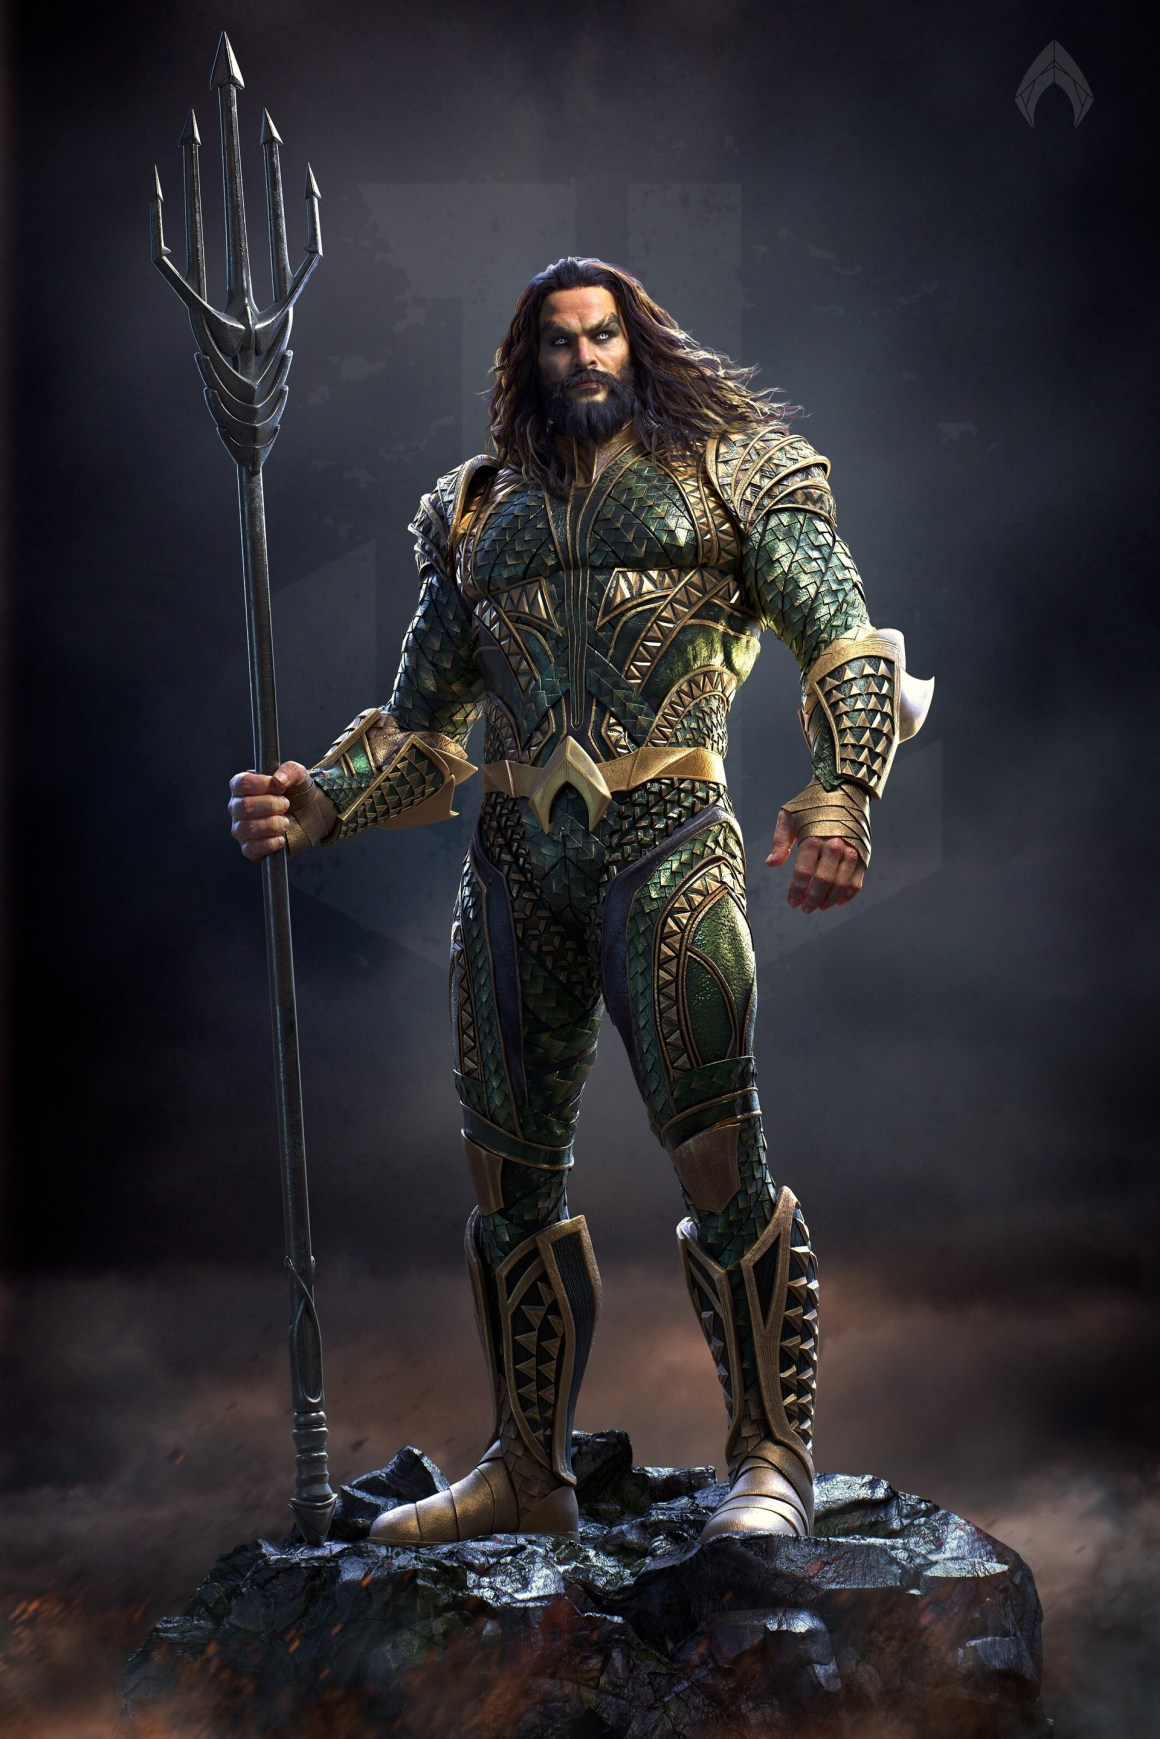 Aquaman by Zhao changyuan